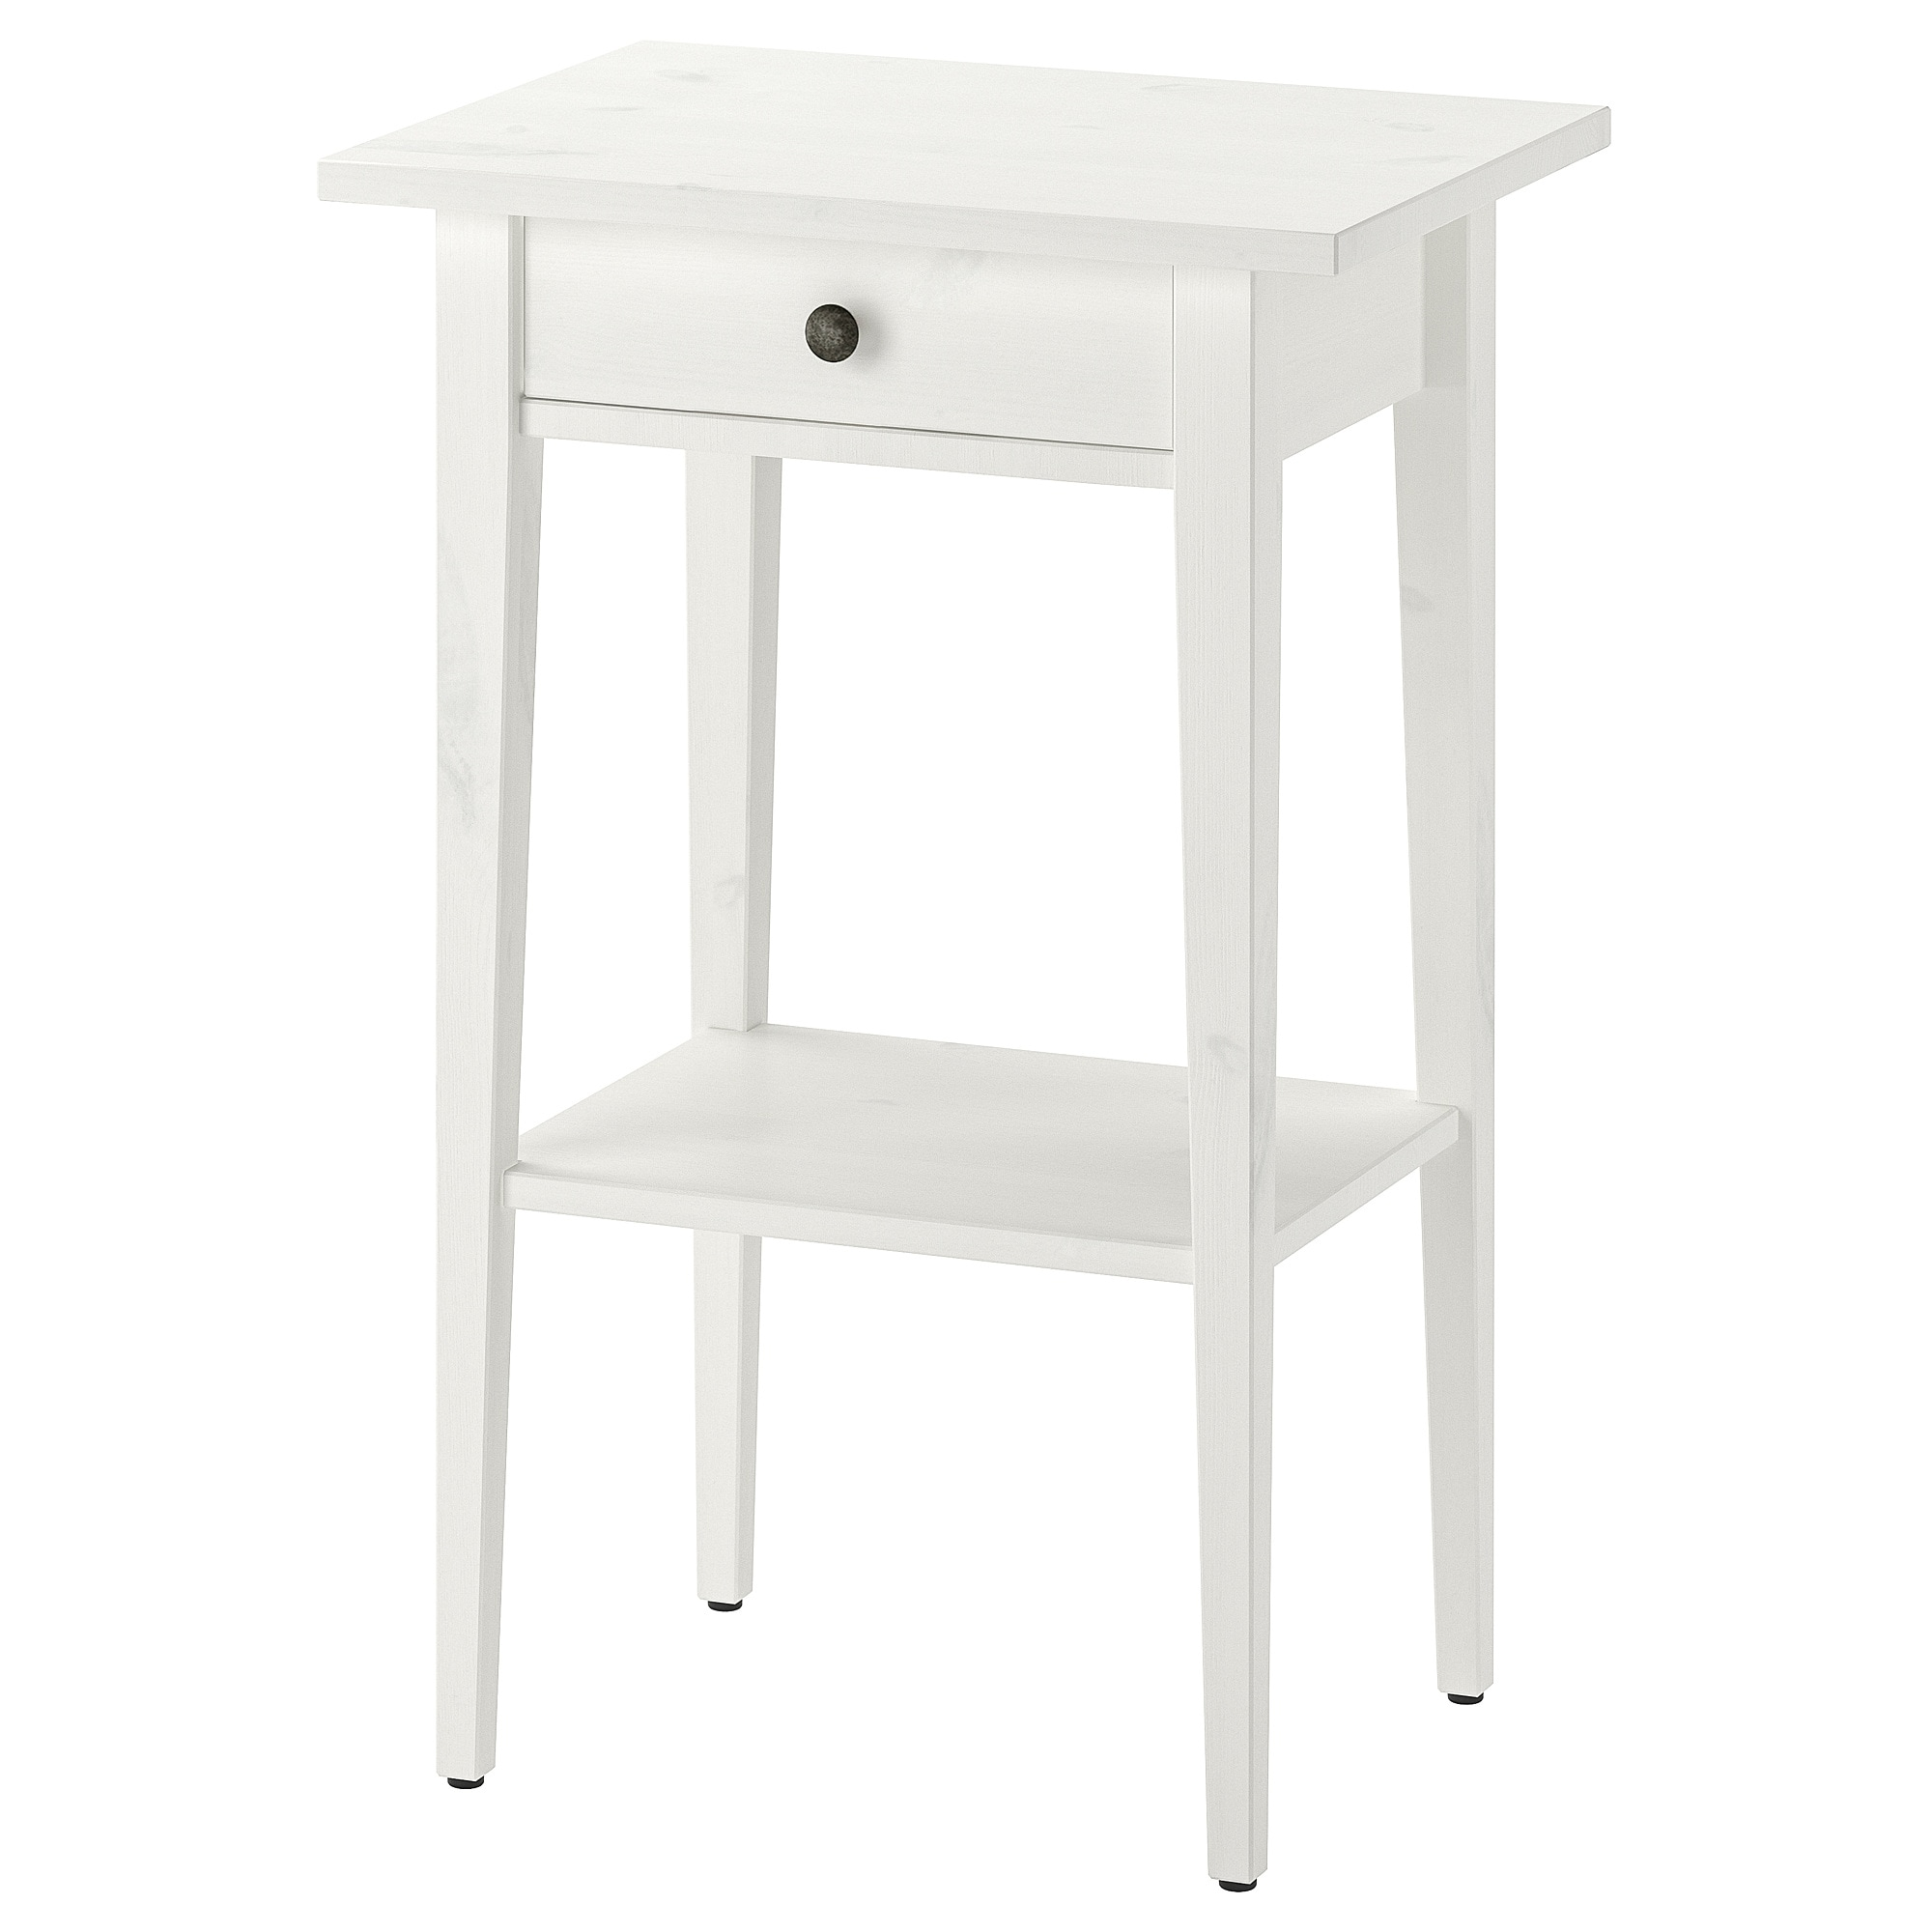 new concept 26ead 8f9be Nightstand HEMNES white stain